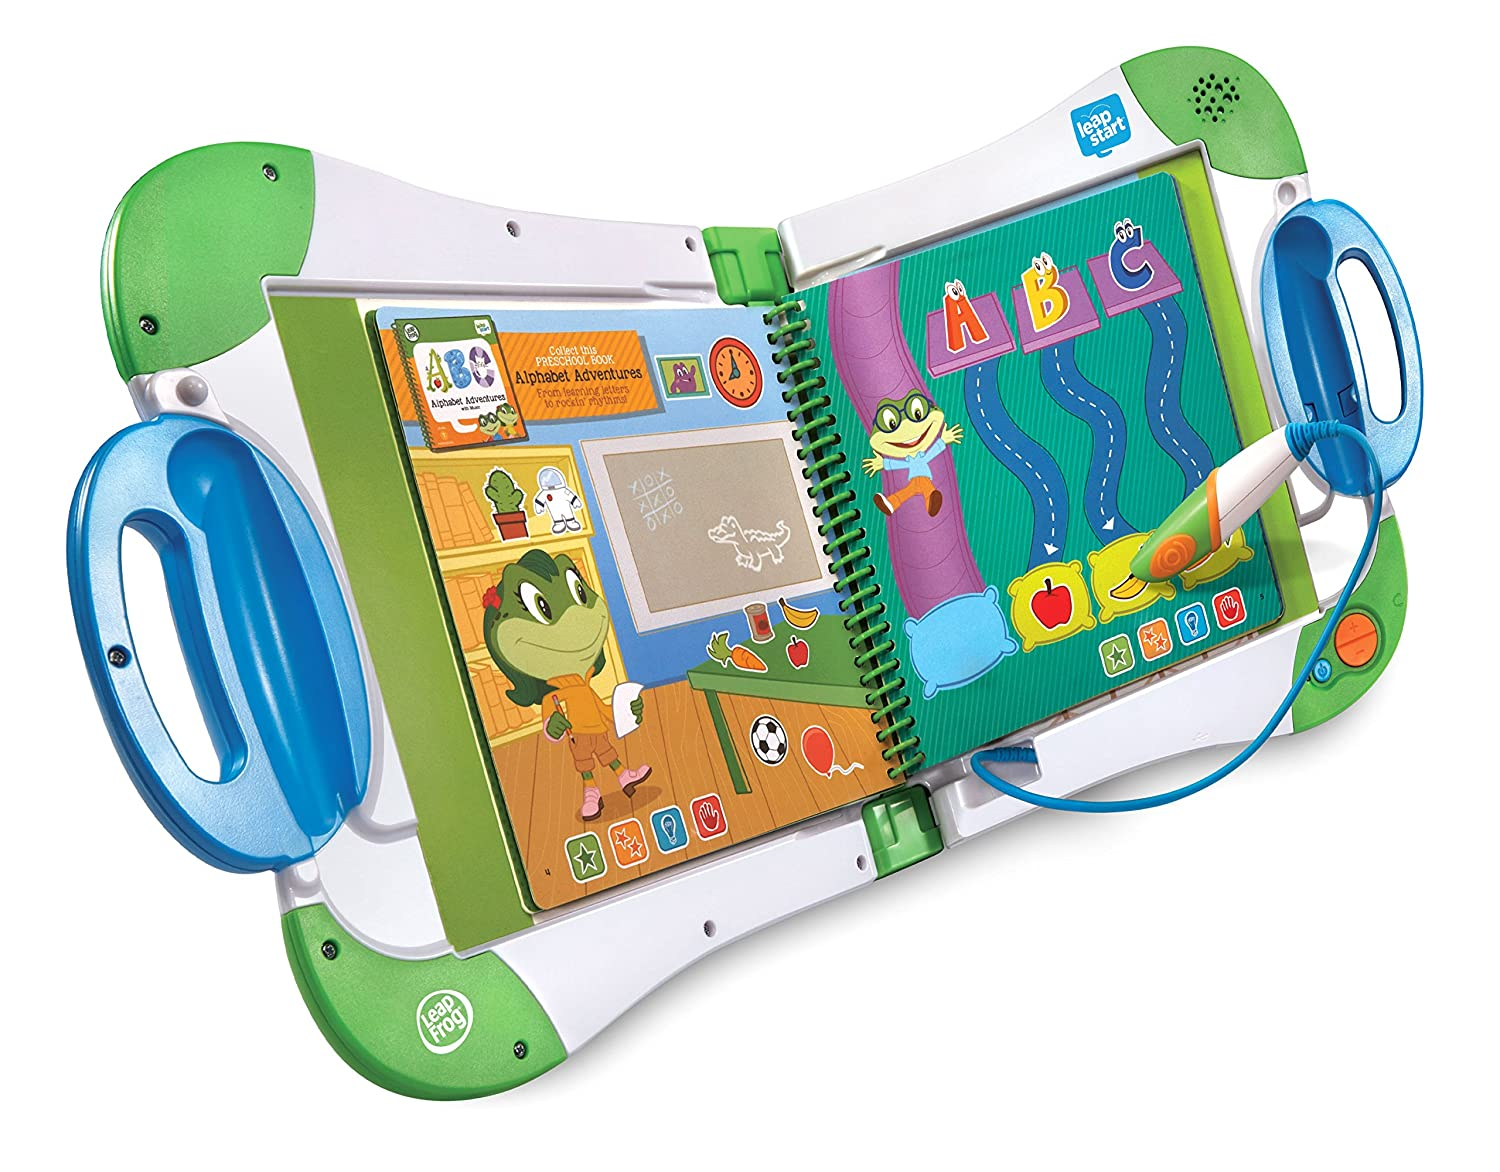 3322f4cc1f1 Buy Leapfrog Leap Start Preschool Interactive Learning System